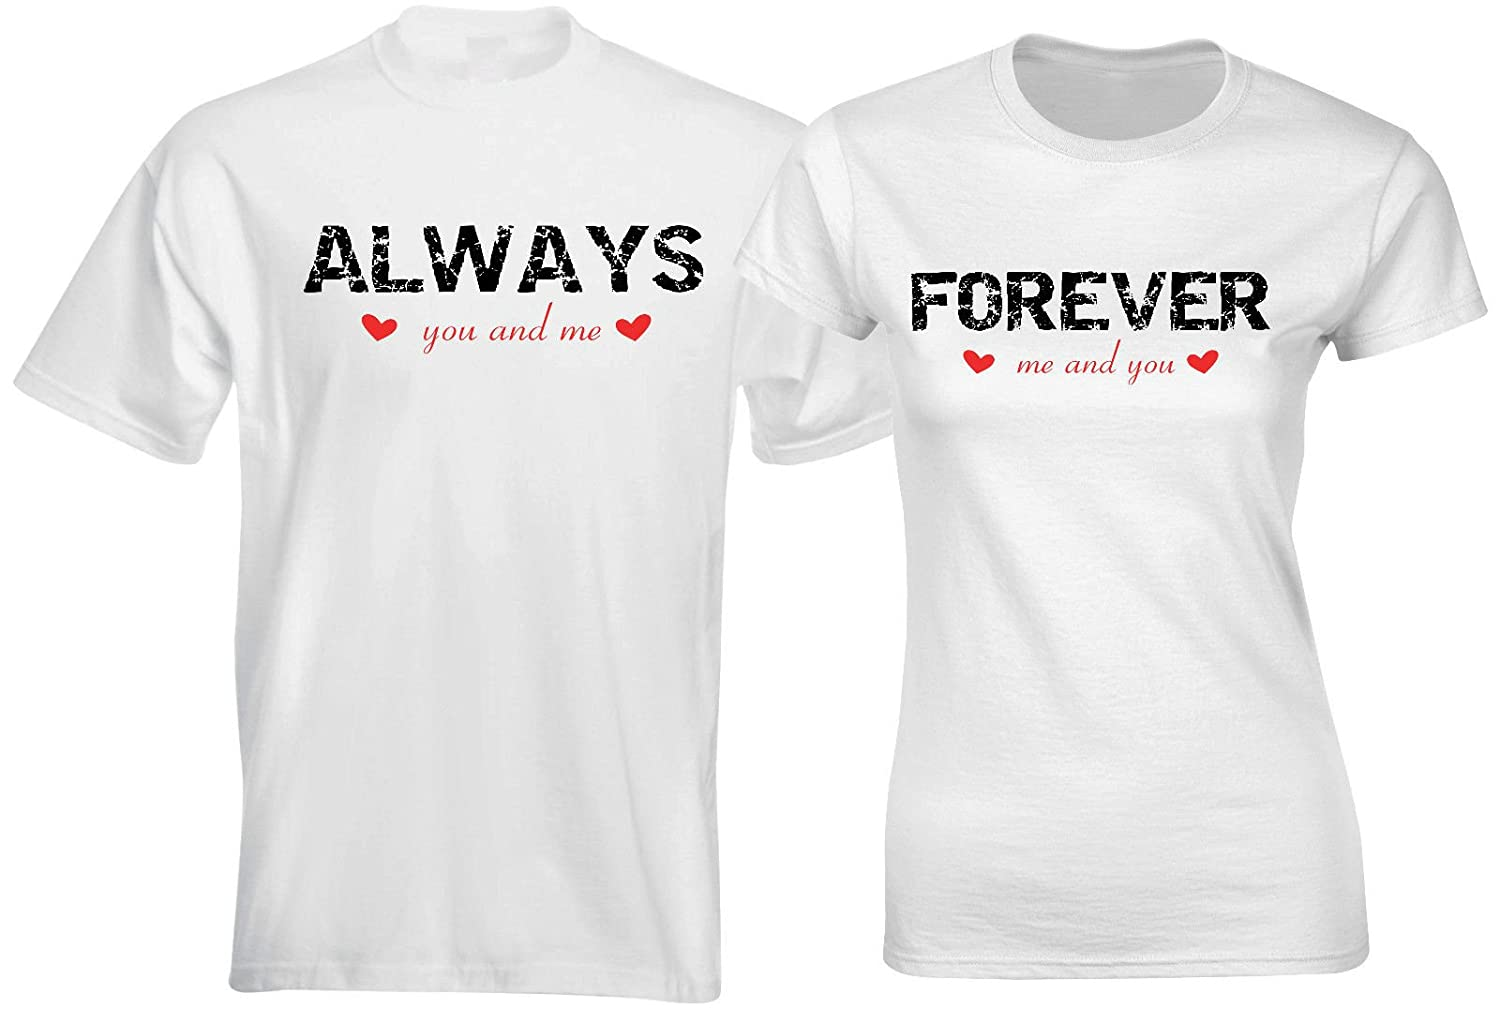 aa7fdffbd9 Matching Couple T Shirts Always Forever Me You His & Her Couples Clothes  Outfits: Amazon.co.uk: Clothing